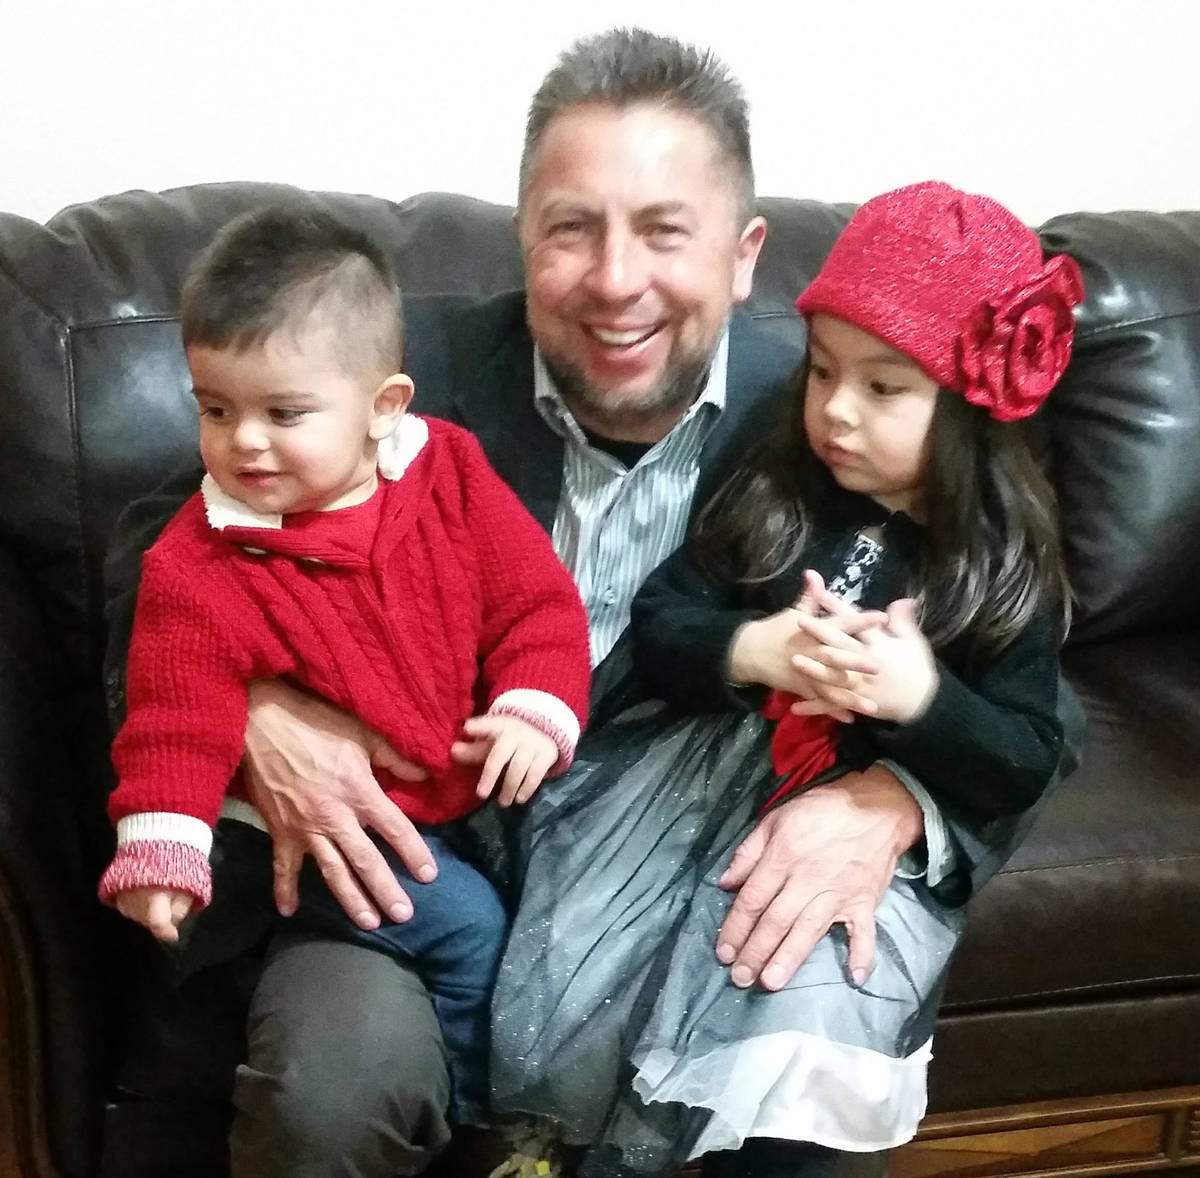 Javier Barajas with his children, Javier III, left, and Jimena. (Javier Barajas)